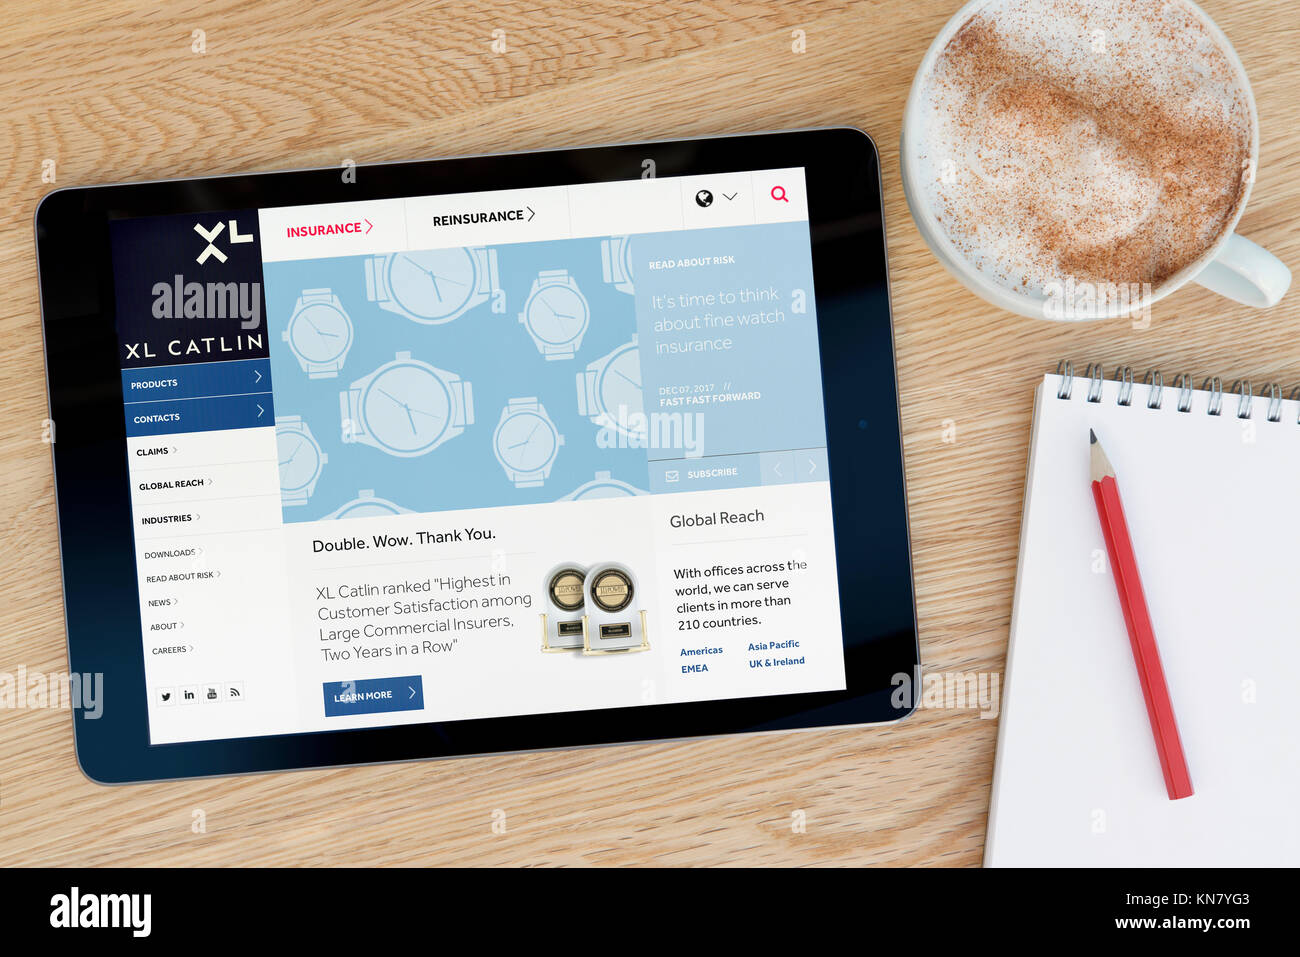 The XL Catlin website on an iPad tablet device which rests on a wooden table beside a notepad and pencil and a cup - Stock Image